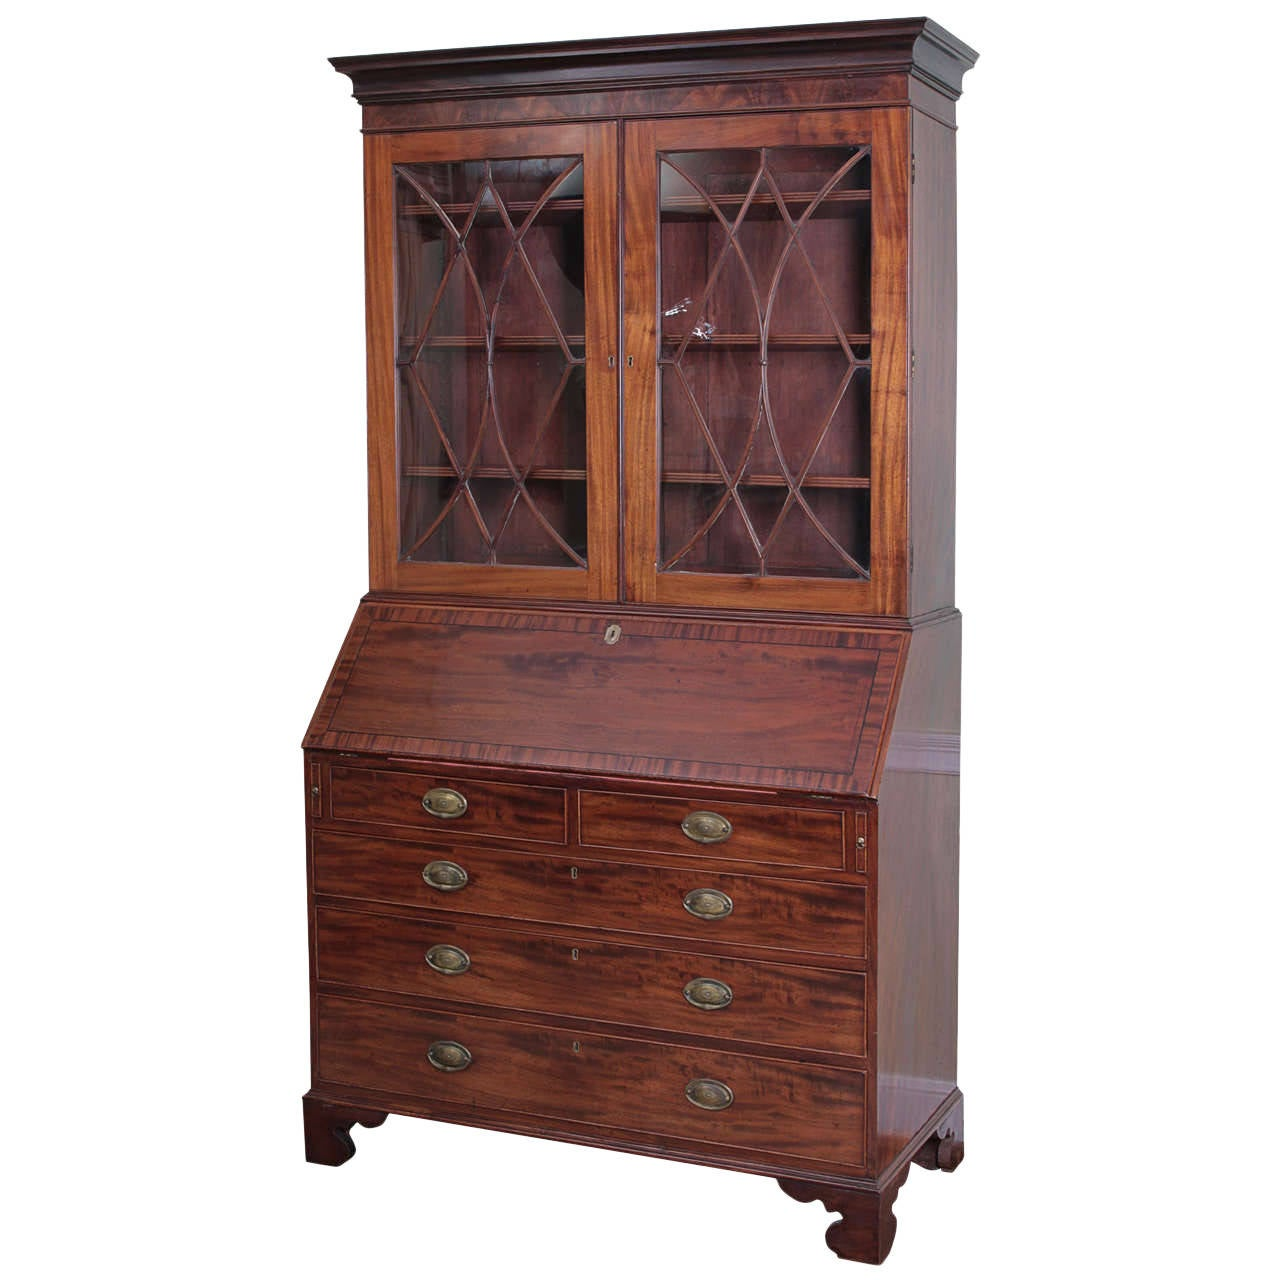 richly hued george iii mahogany bureau bookcase for sale at 1stdibs. Black Bedroom Furniture Sets. Home Design Ideas